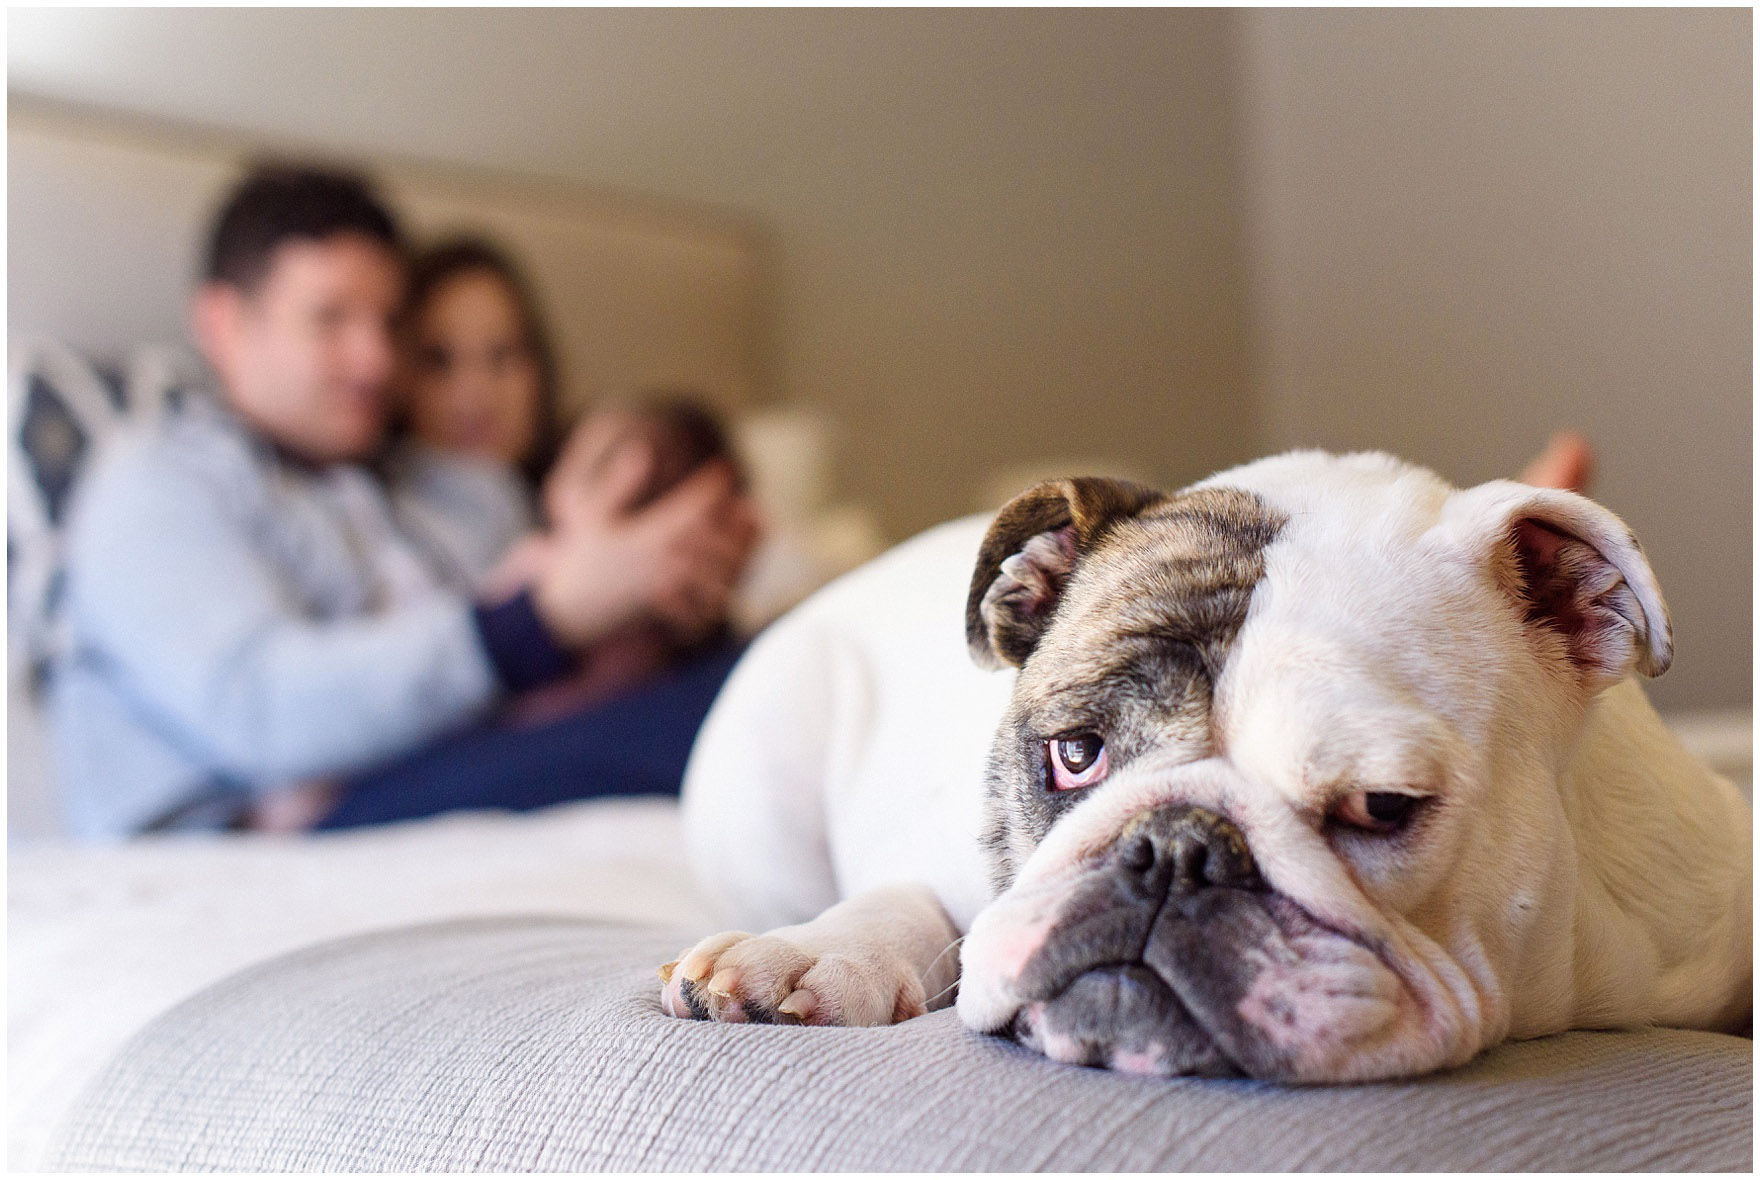 The family pet bulldog is bored during during a Chicago newborn baby photography session.